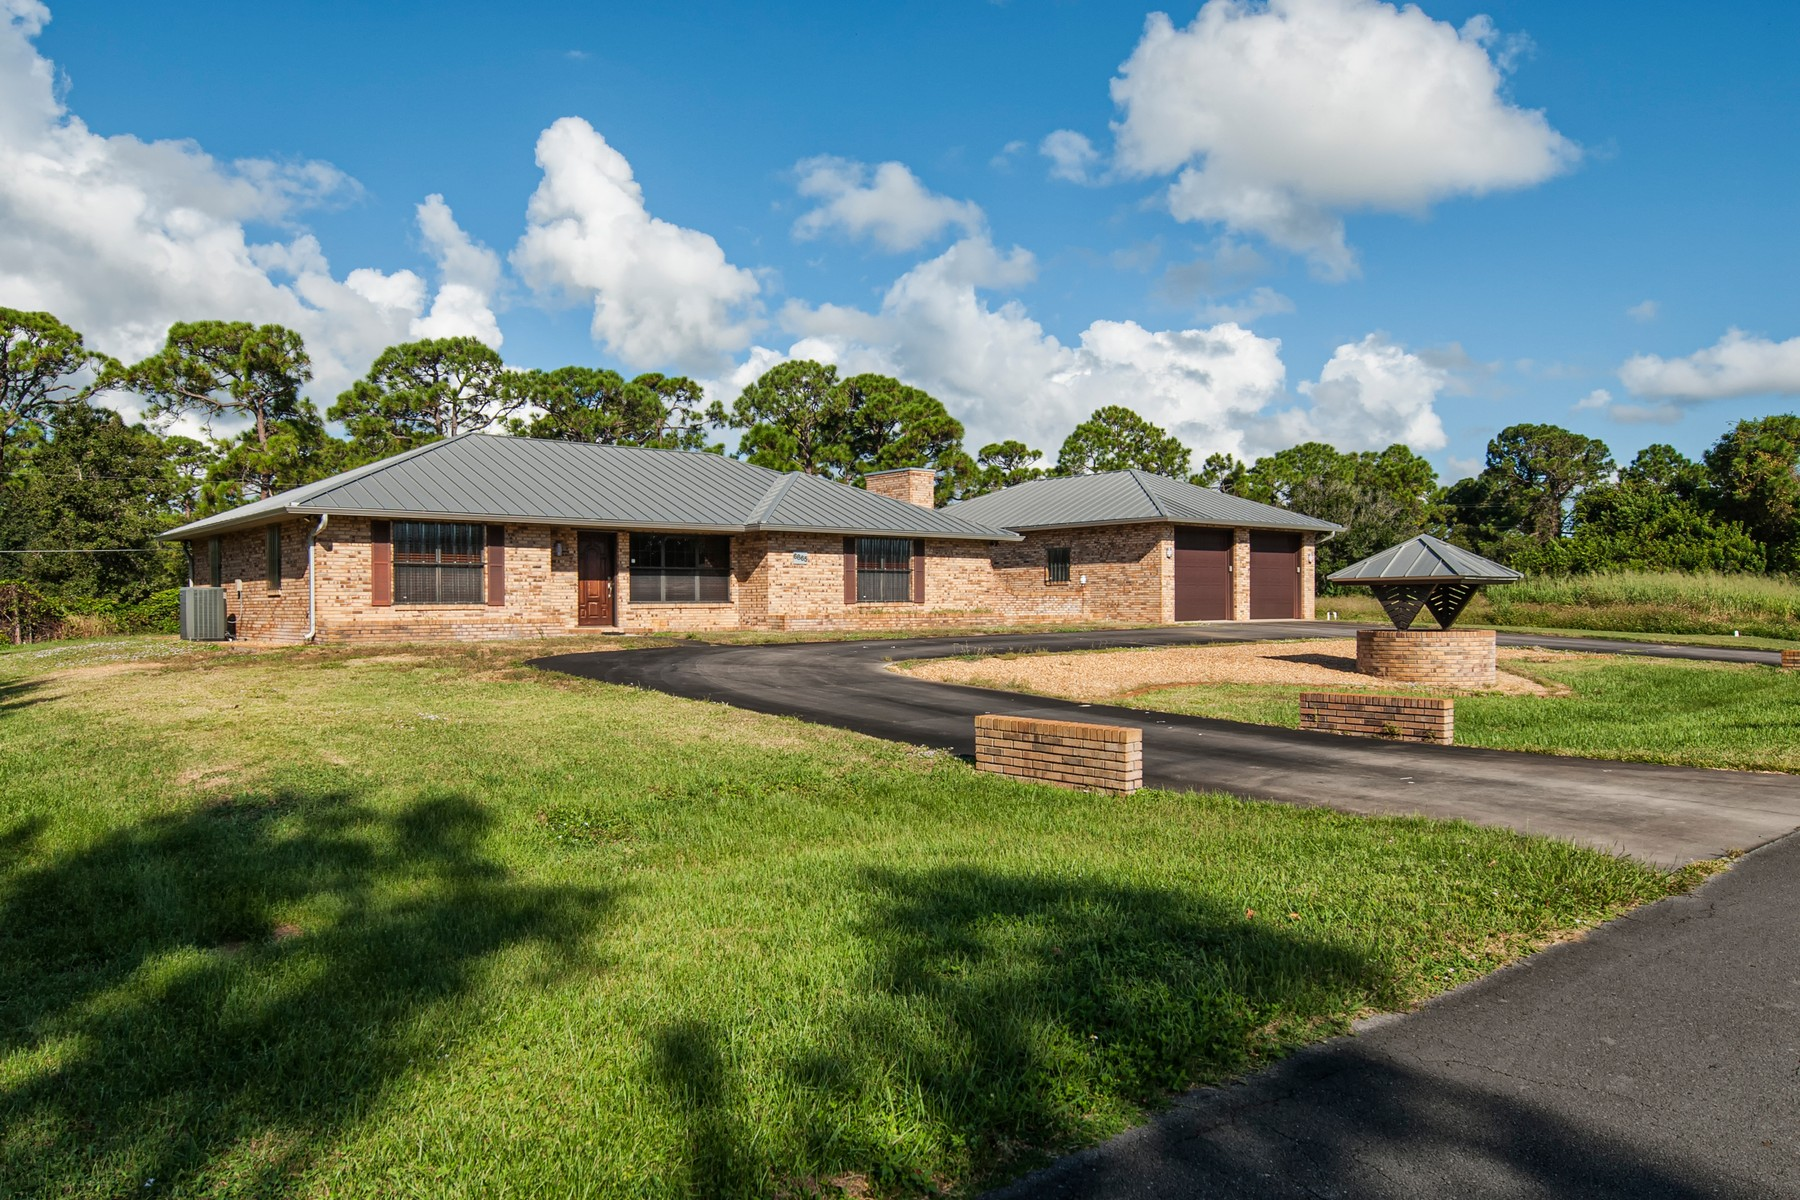 Beautifully Maintained Brick Home on 1/2 Acre 6865 51st Avenue Vero Beach, Florida 32967 Hoa Kỳ